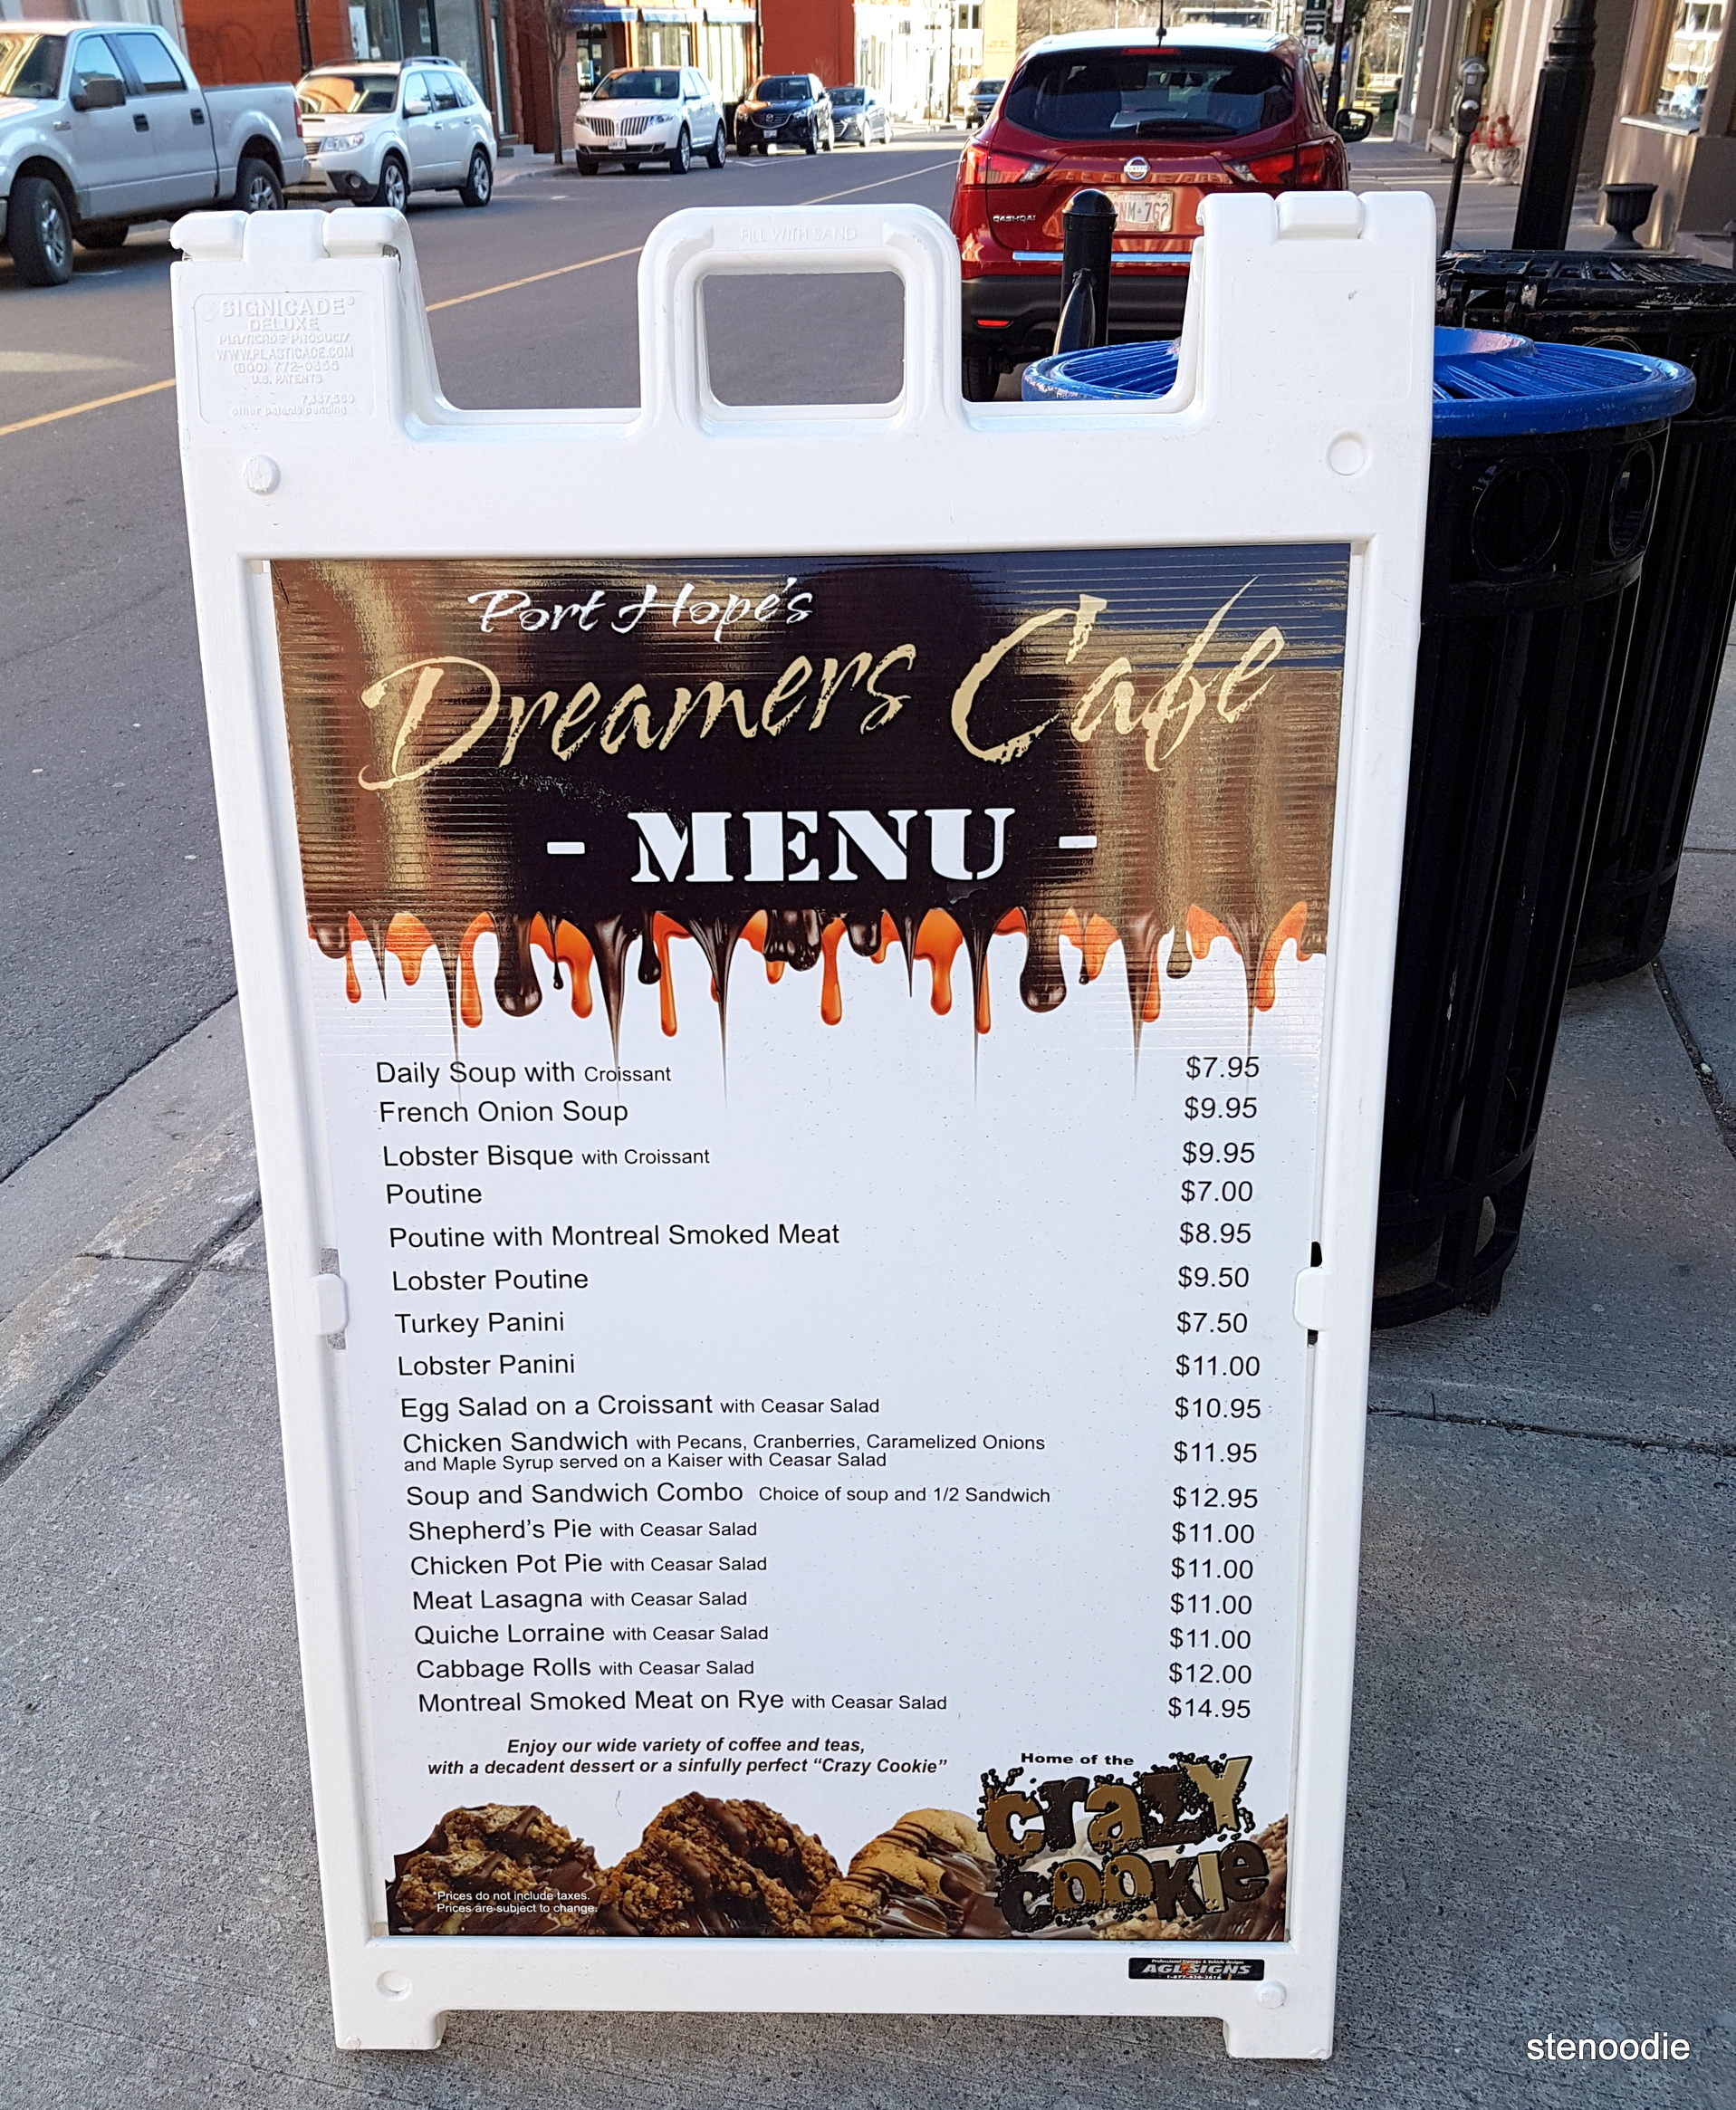 Dreamers' Cafe menu and prices